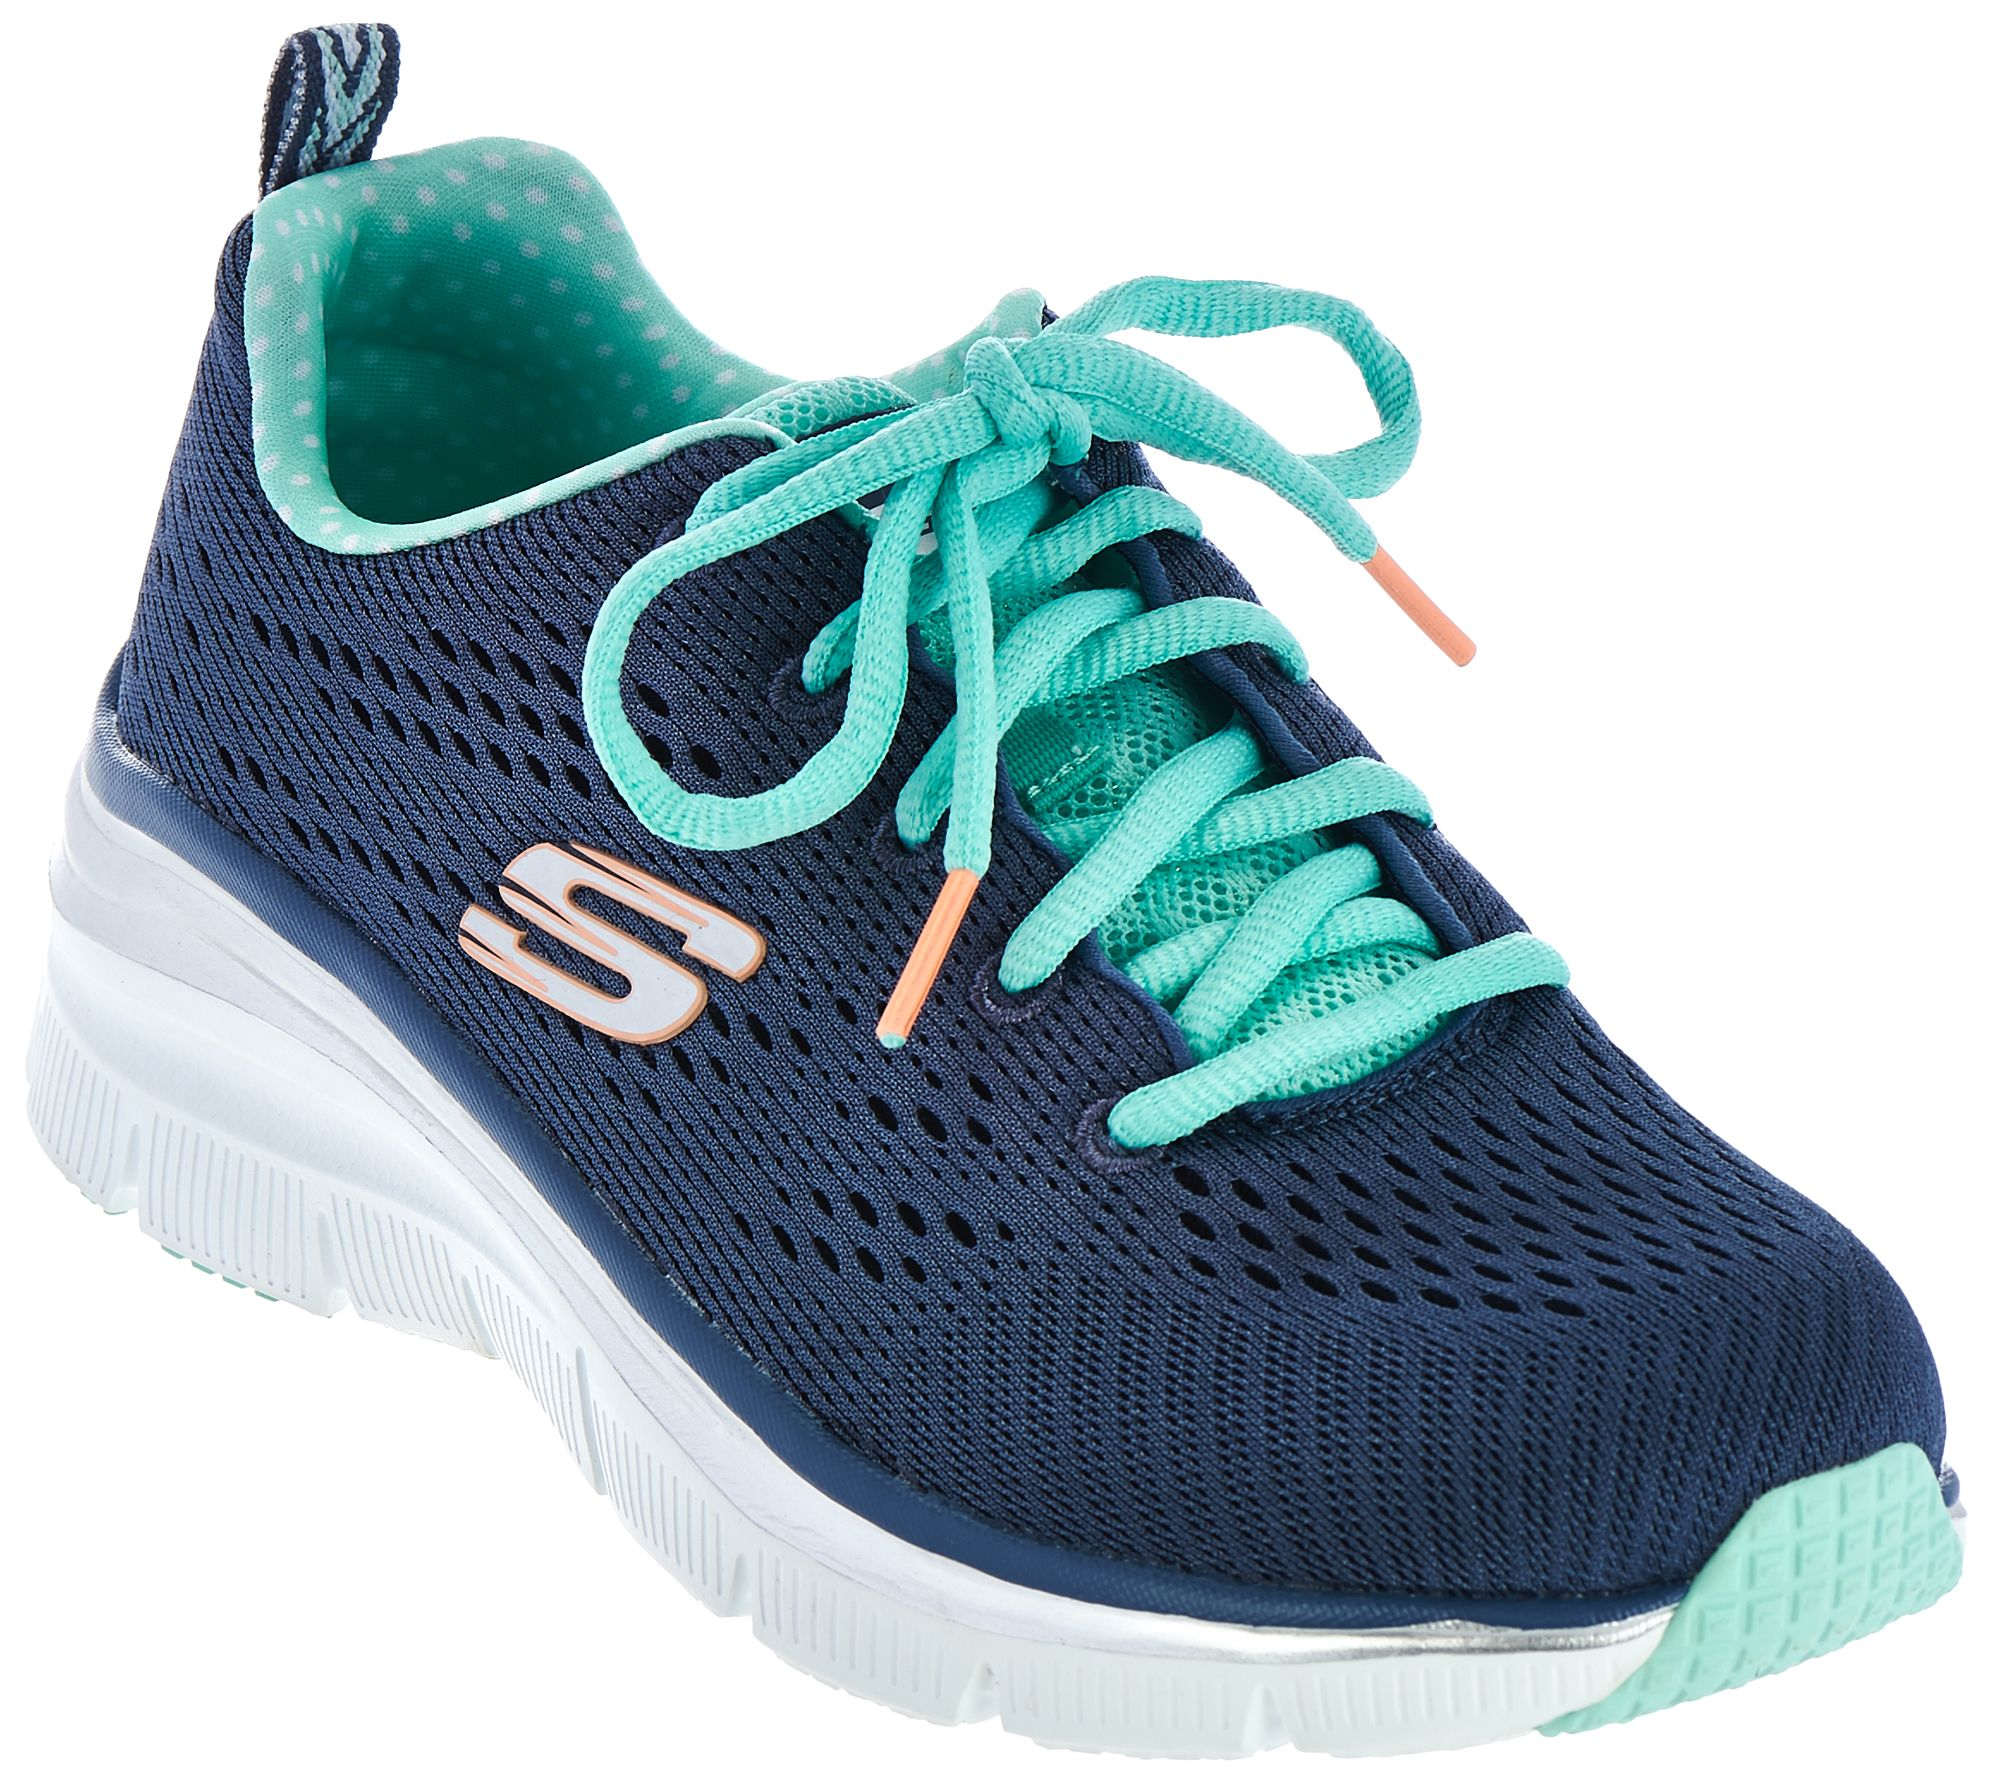 SKECHERS USA, Inc., an award-winning global leader in the lifestyle footwear industry, designs, develops, and markets lifestyle footwear that appeals to trend-savvy men, women, and children. A billion-dollar-plus company.